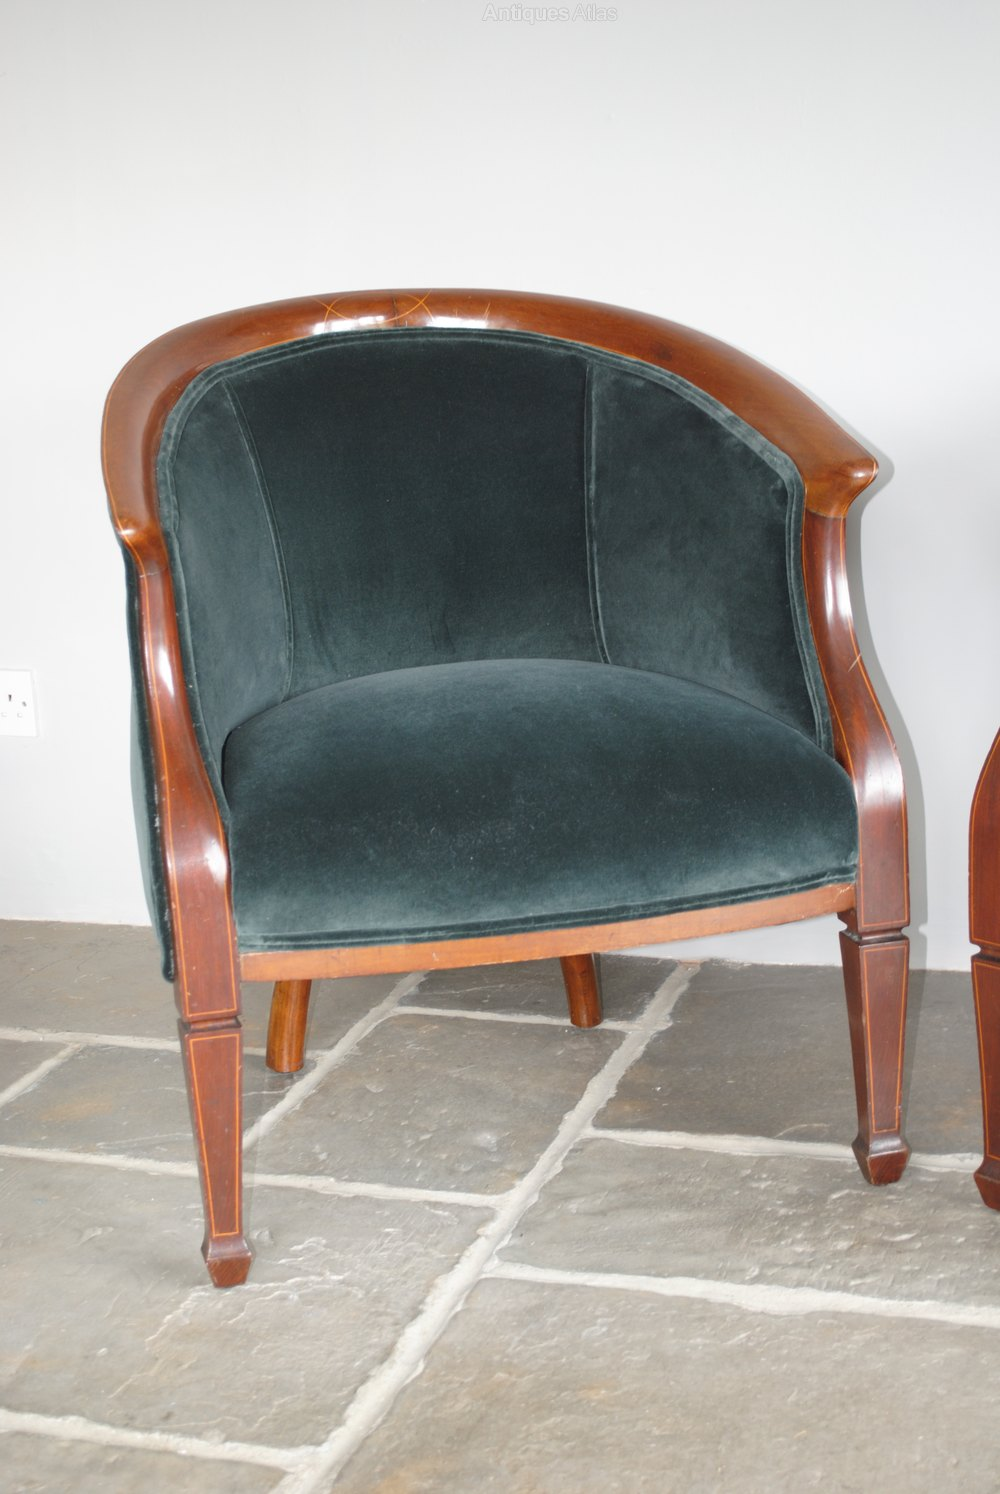 ... Armchairs Antique Armchairs, Occasional Chairs & Stools ... - Pair Of Antique Edwardian Tub Chairs, Armchairs - Antiques Atlas